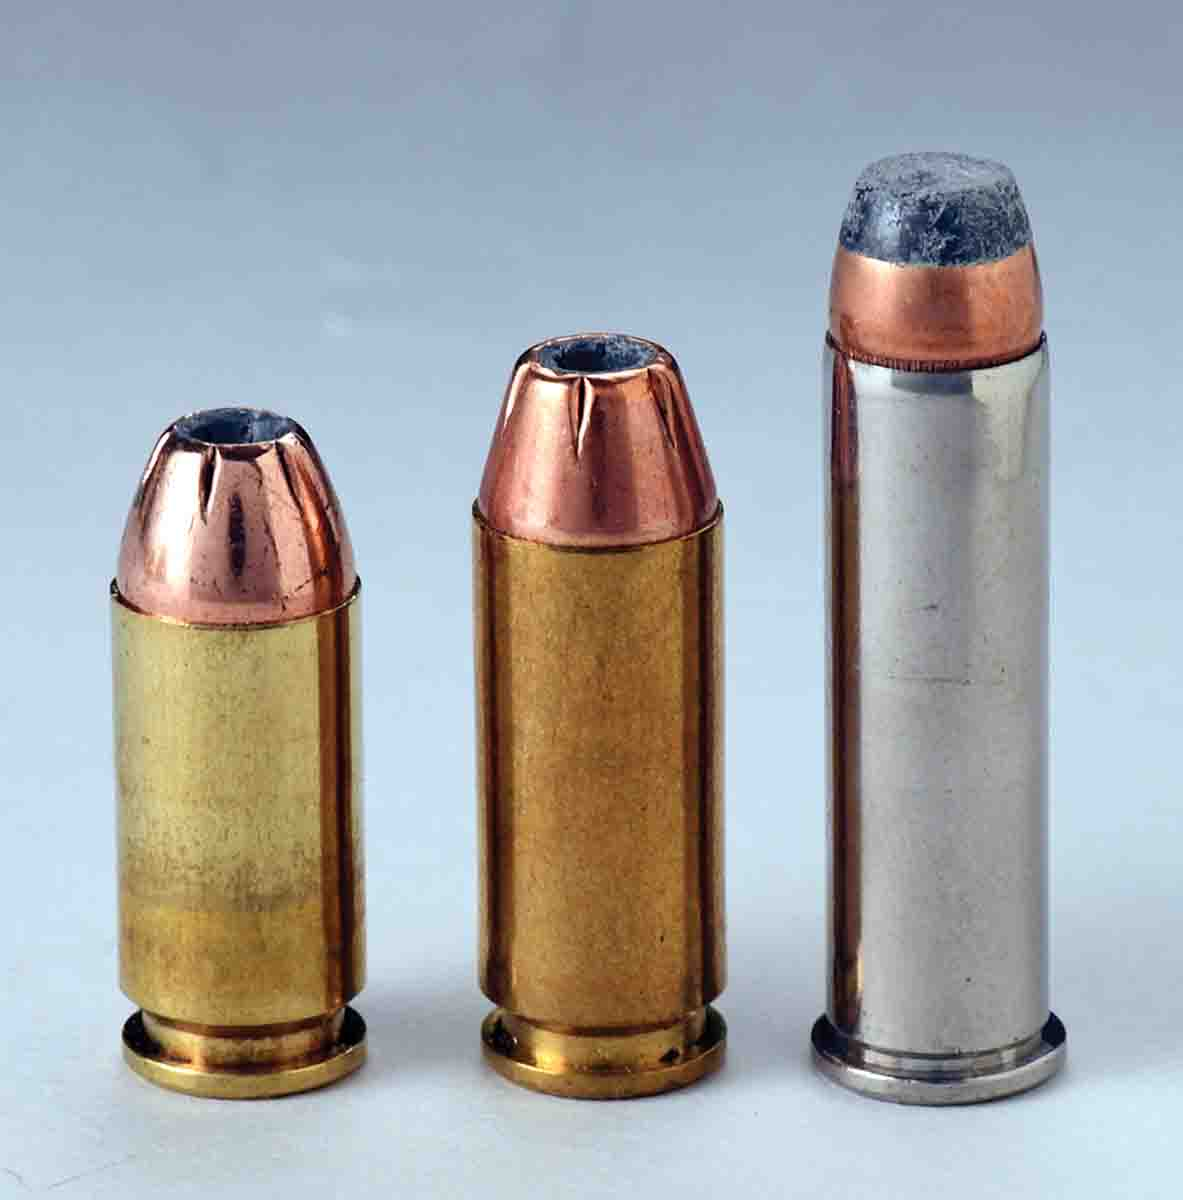 These cartridges include (left to right): a .40 S&W round with no crimp, a 10mm Auto with a light taper crimp  and a .357 Magnum revolver round with a pronounced roll crimp. The .40 and 10mm need a positive case mouth edge exposed for proper headspacing while the rimmed revolver round does not.